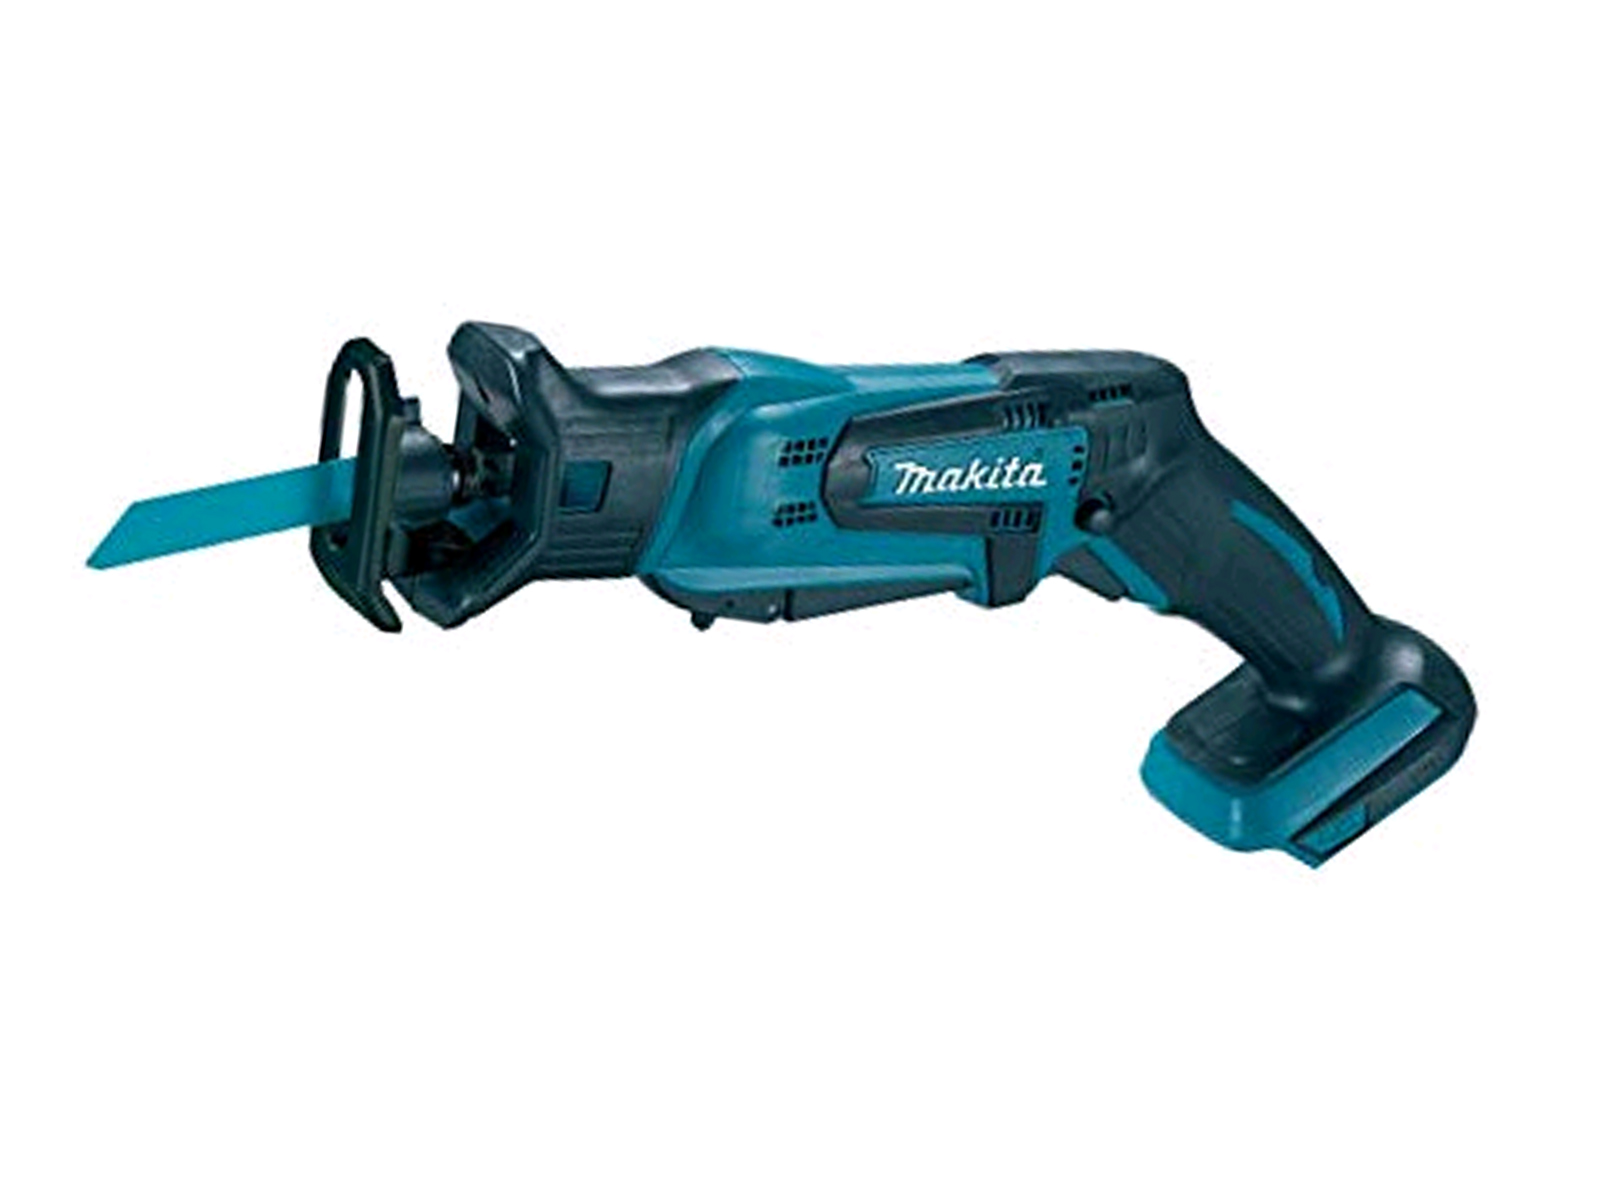 Makita DJR183 18V LXT Mini Brushed Reciprocating Saw - Body Only